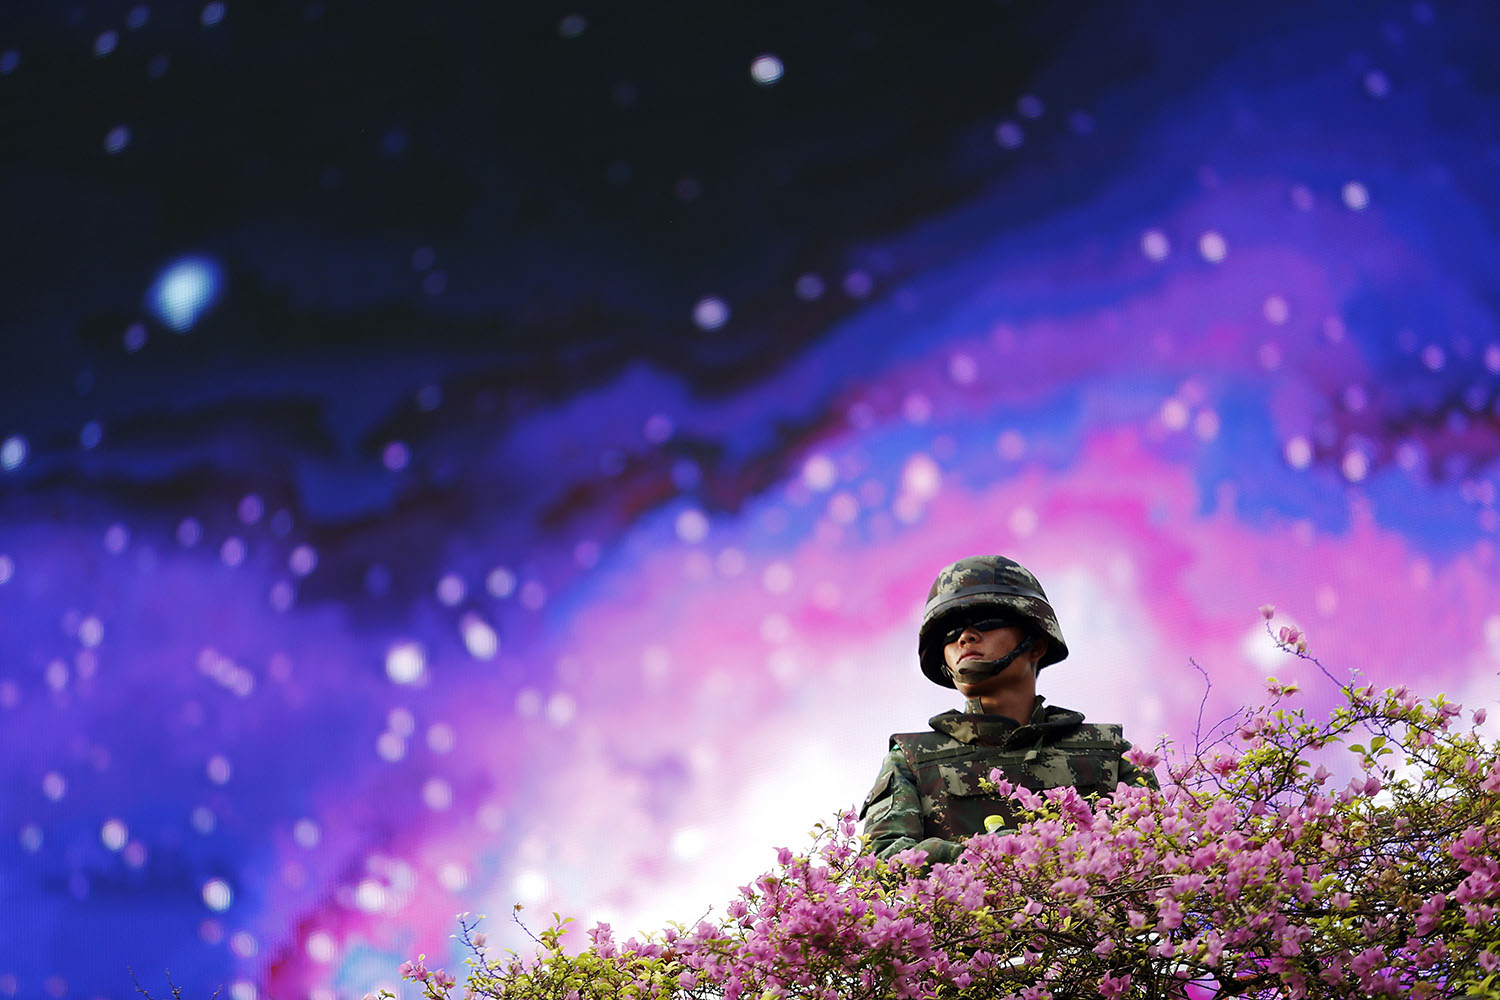 May 30, 2014. A soldier takes up position in front of a large screen at the Victory Monument in Bangkok Thailand, where anti-coup protesters had gathered on previous days to rally against the military coup.